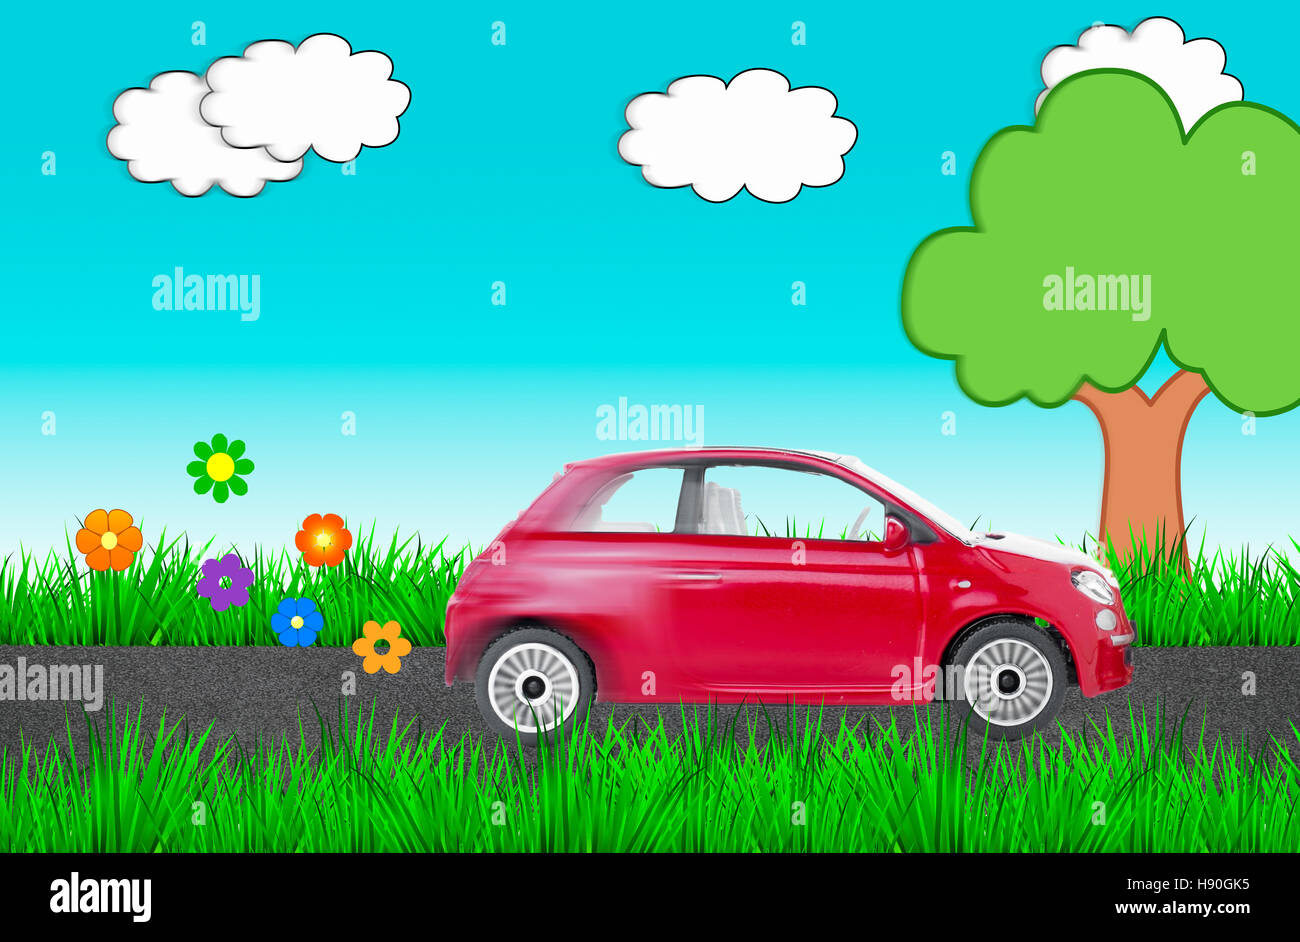 A picture depicting an environmentally friendly vehicle moving in nature. - Stock Image